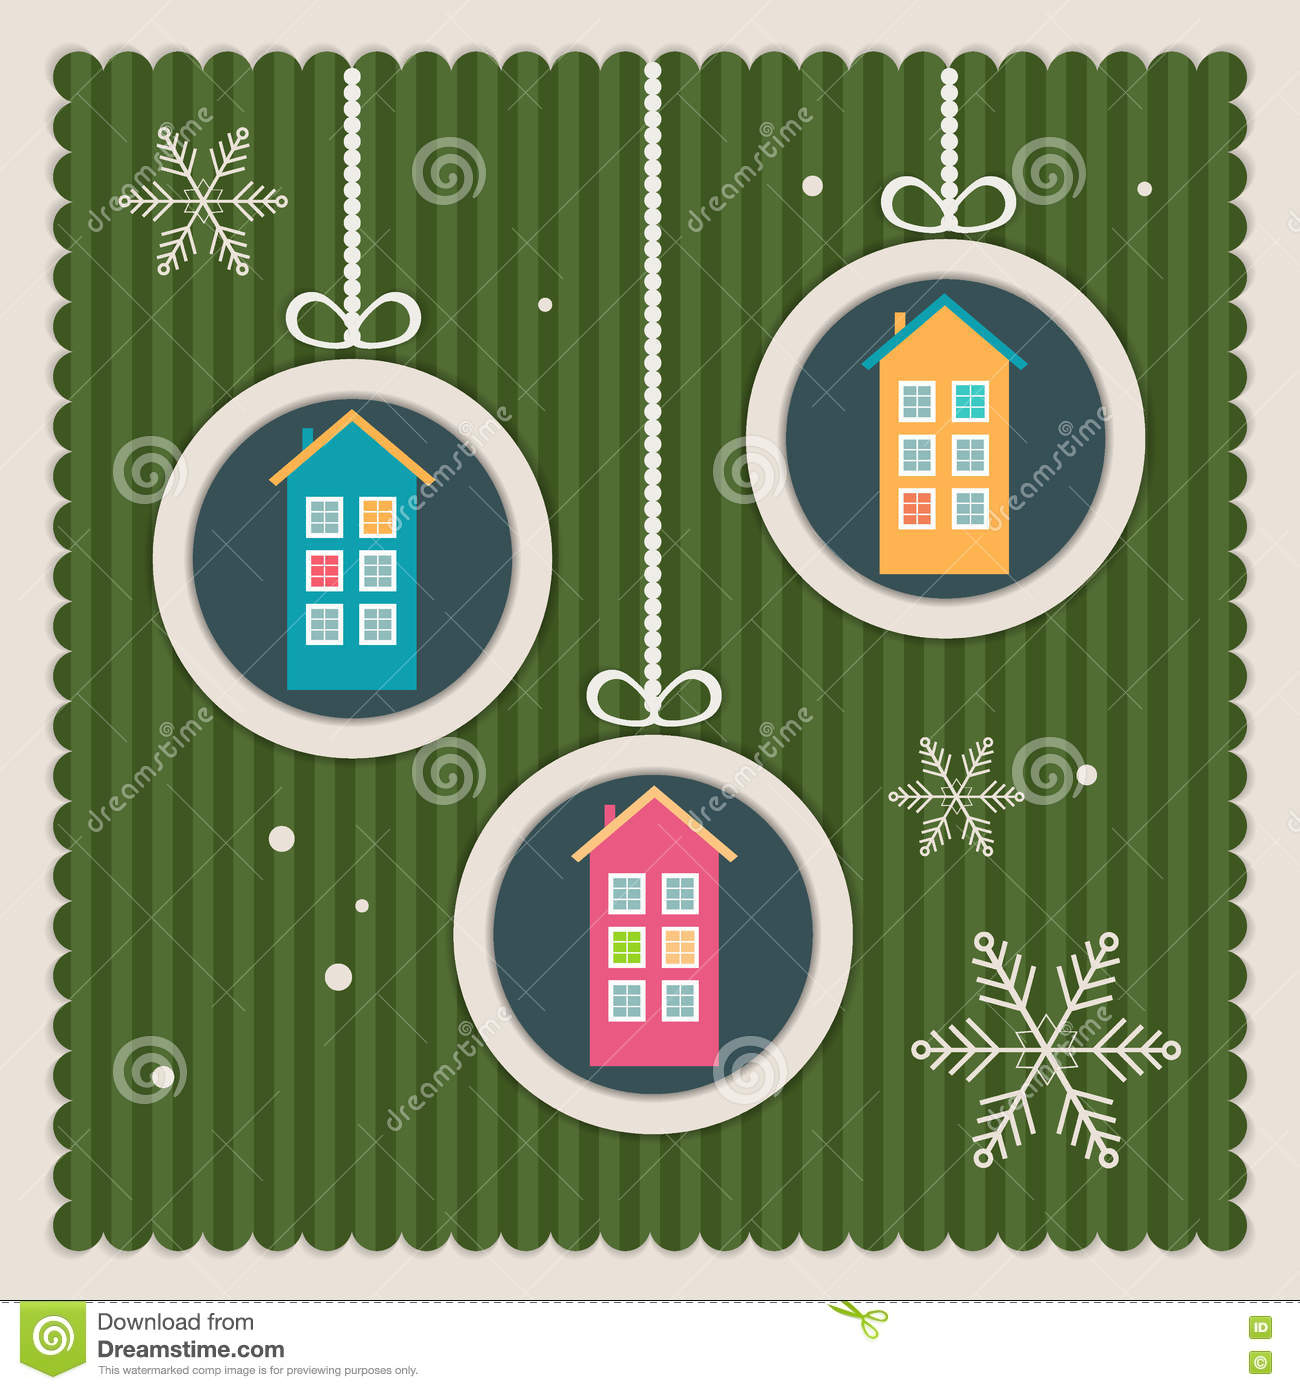 Real Estate Christmas Card With Colorful Houses And Snowflakes Stock